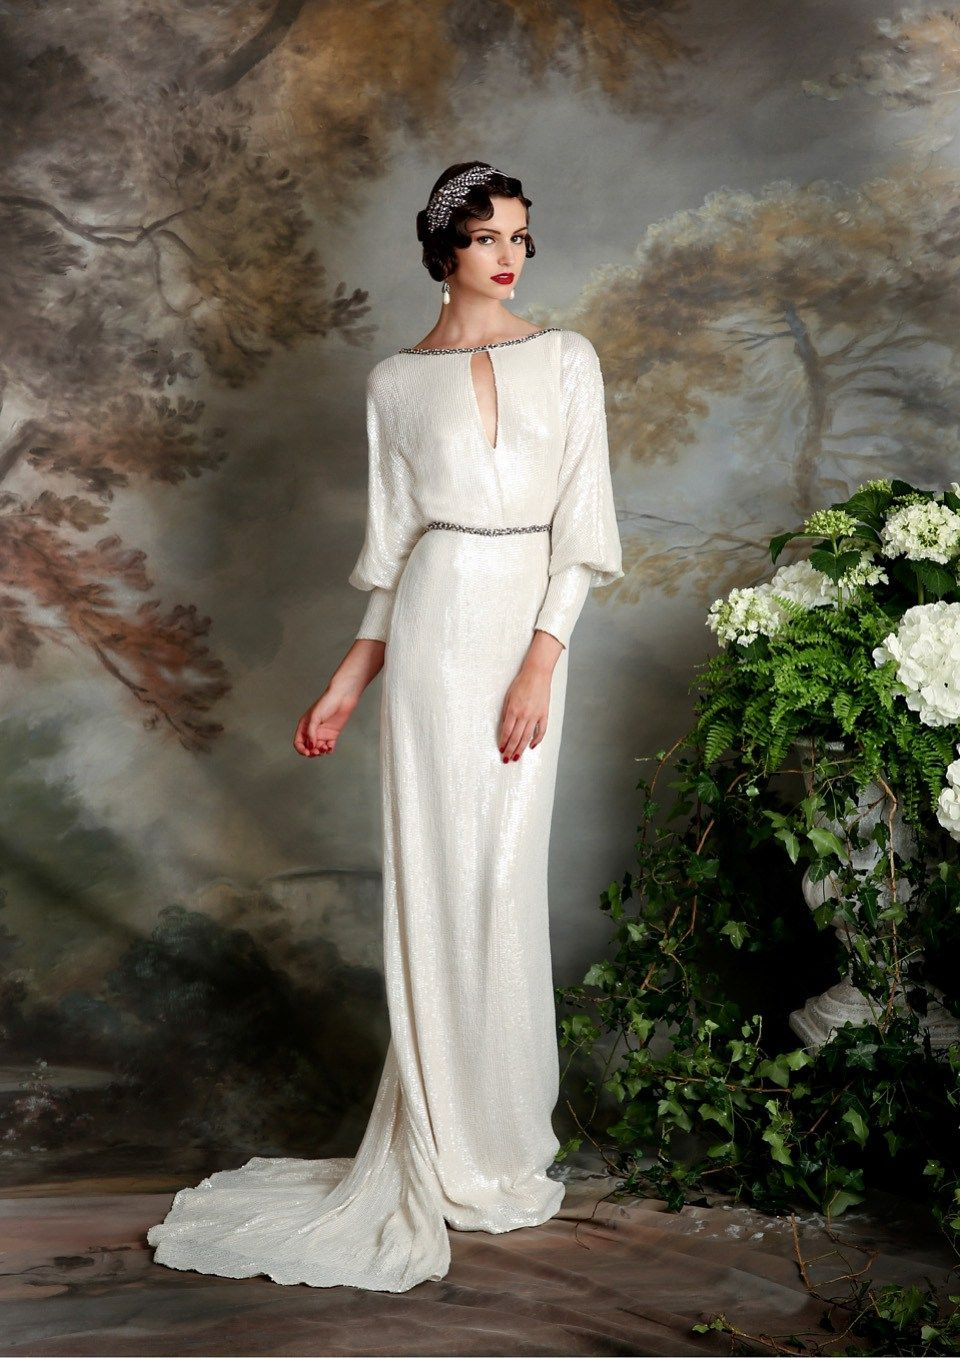 a11010aae802 Eliza Jane Howell - Elegant Art Deco Inspired Wedding Dresses ...